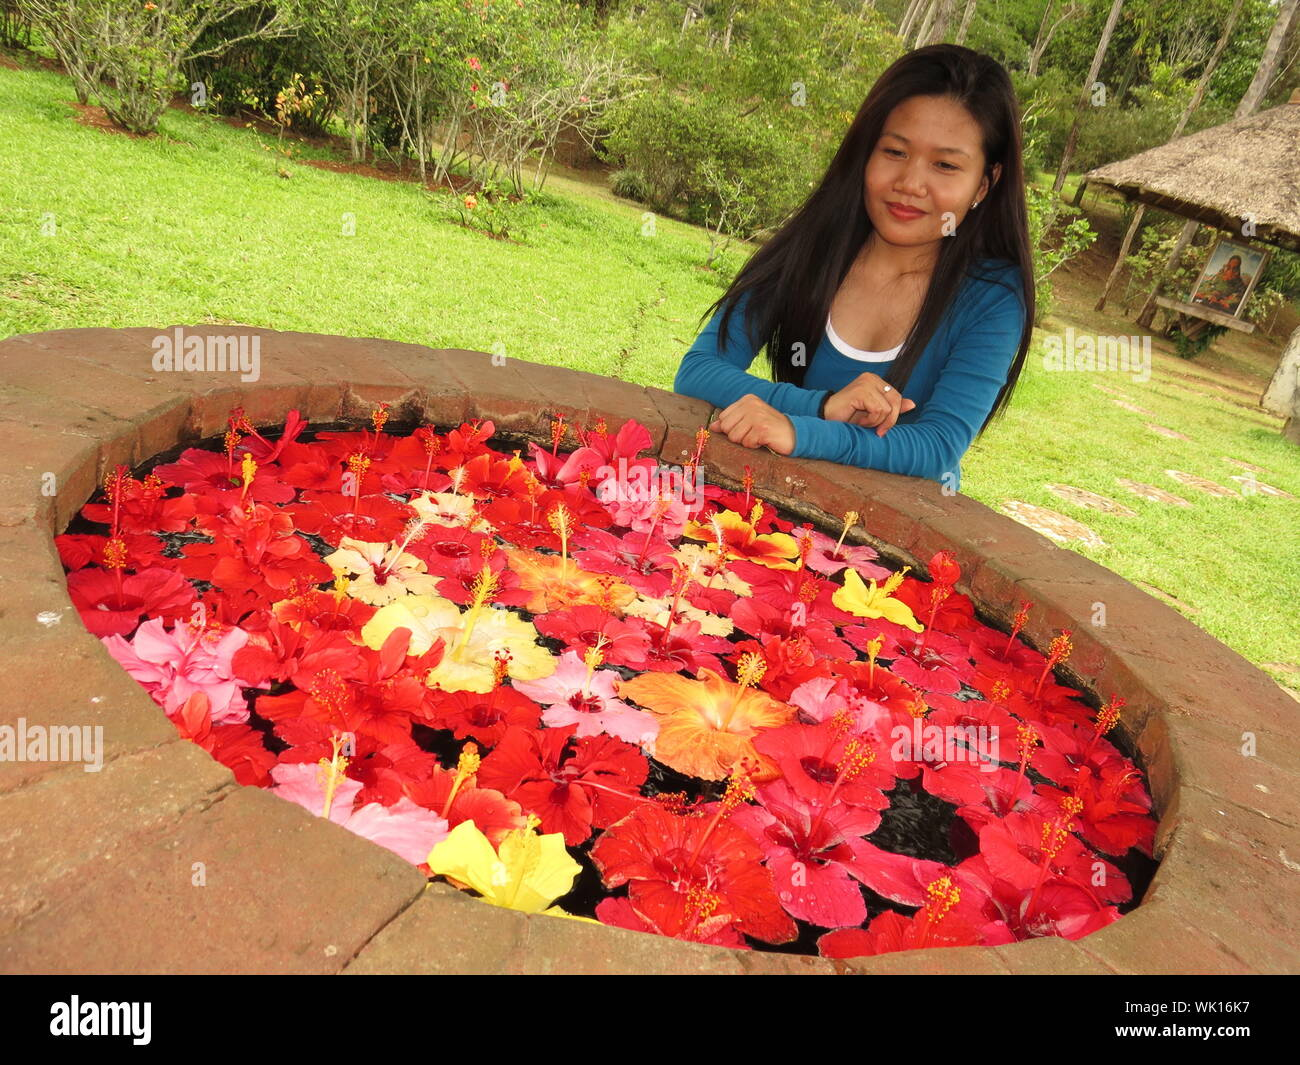 Young Woman Looking At Hibiscus Flowers Floating On Water In Park Stock Photo Alamy